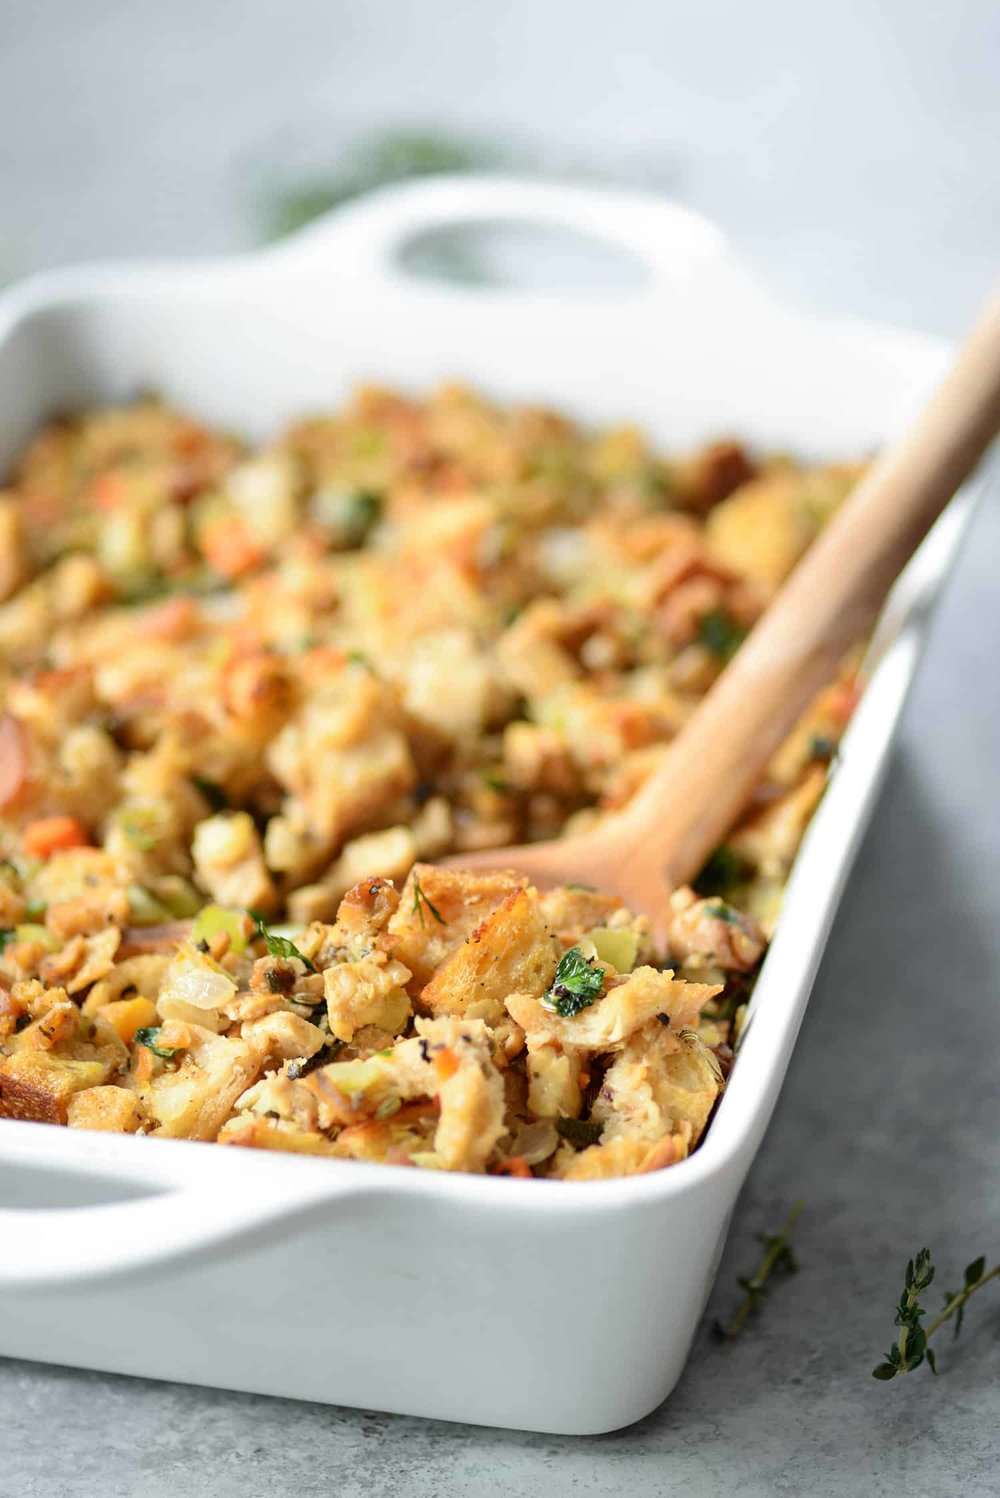 The Best Vegan Stuffing - Tempeh sausage and freshly baked sourdough stuffing